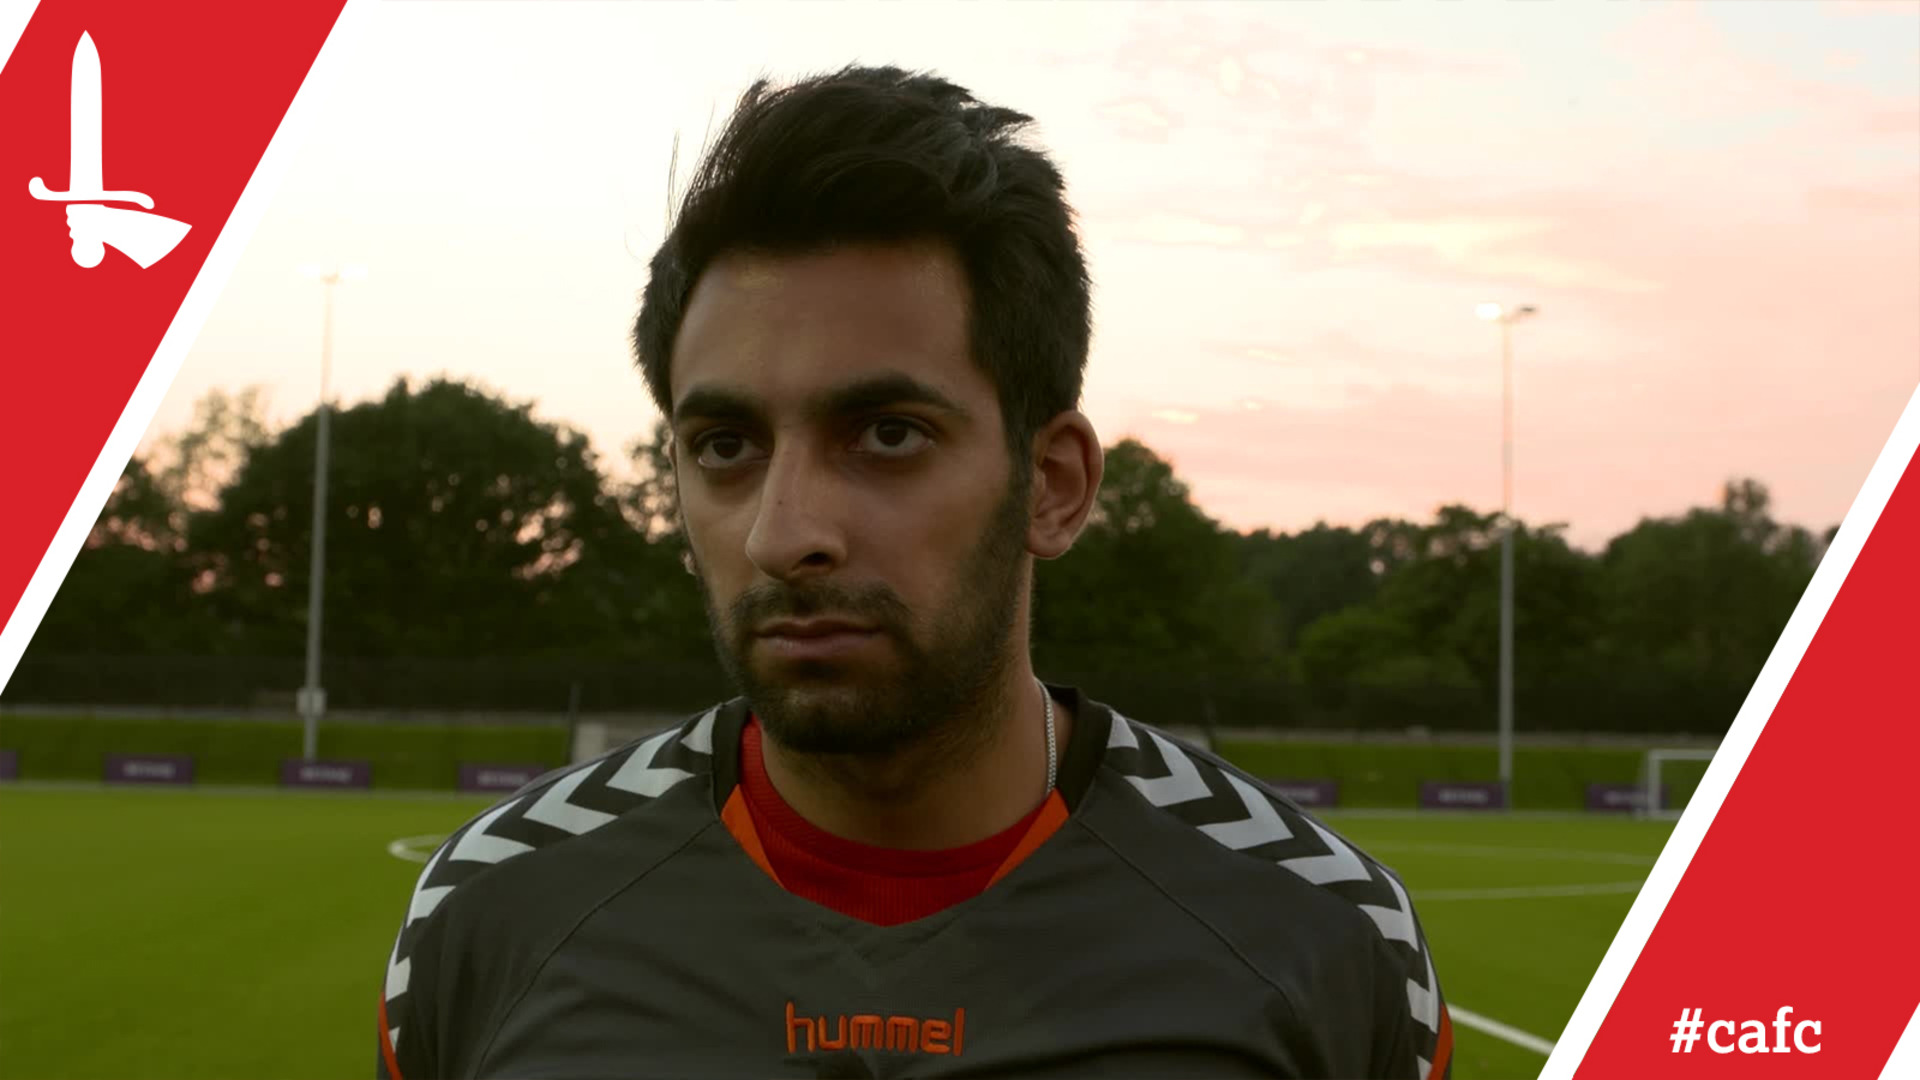 Riteesh Mishra pleased with the first week back